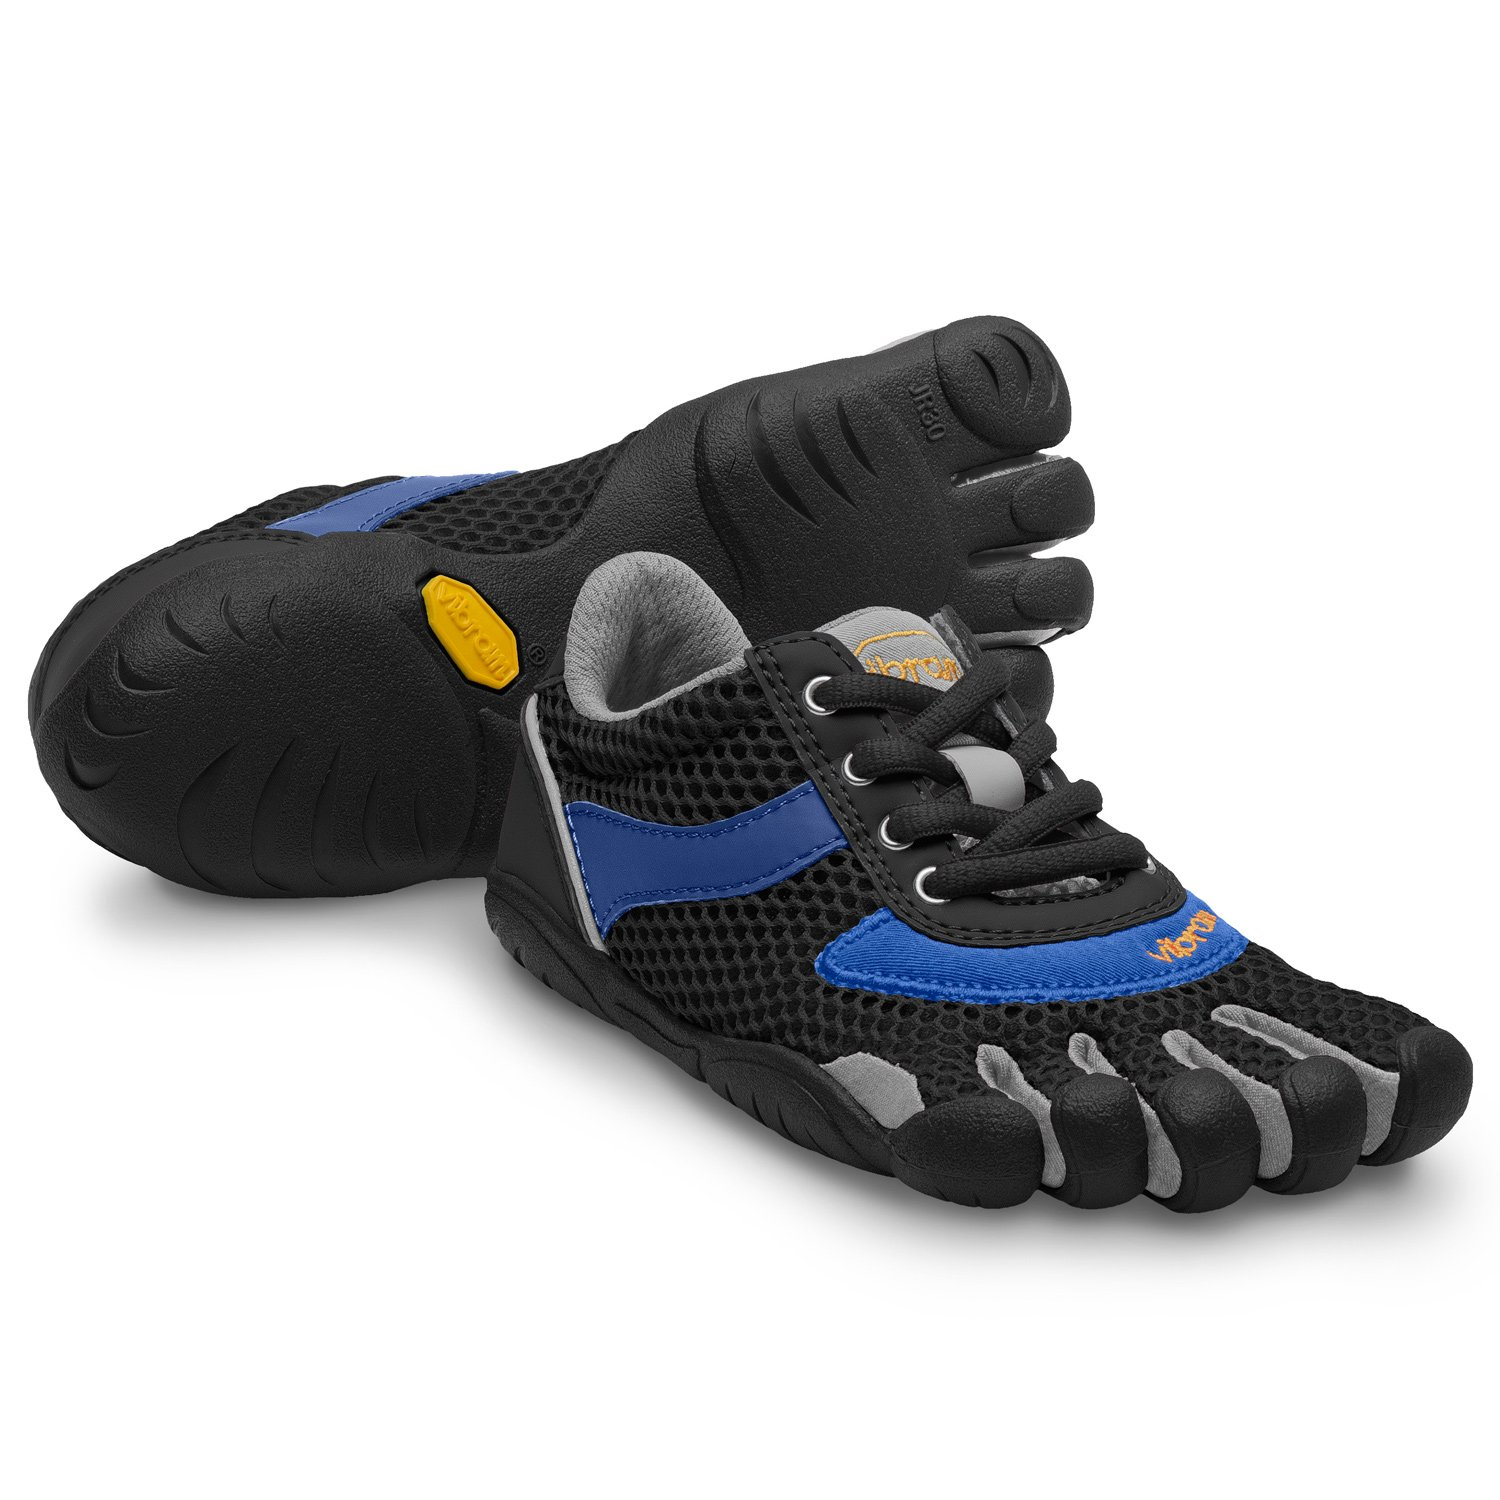 best service bf435 a23ac Vibram 5 Fingers Classic Union Jack - Blue Red White - UK 7.5   Amazon.co.uk  Shoes   Bags